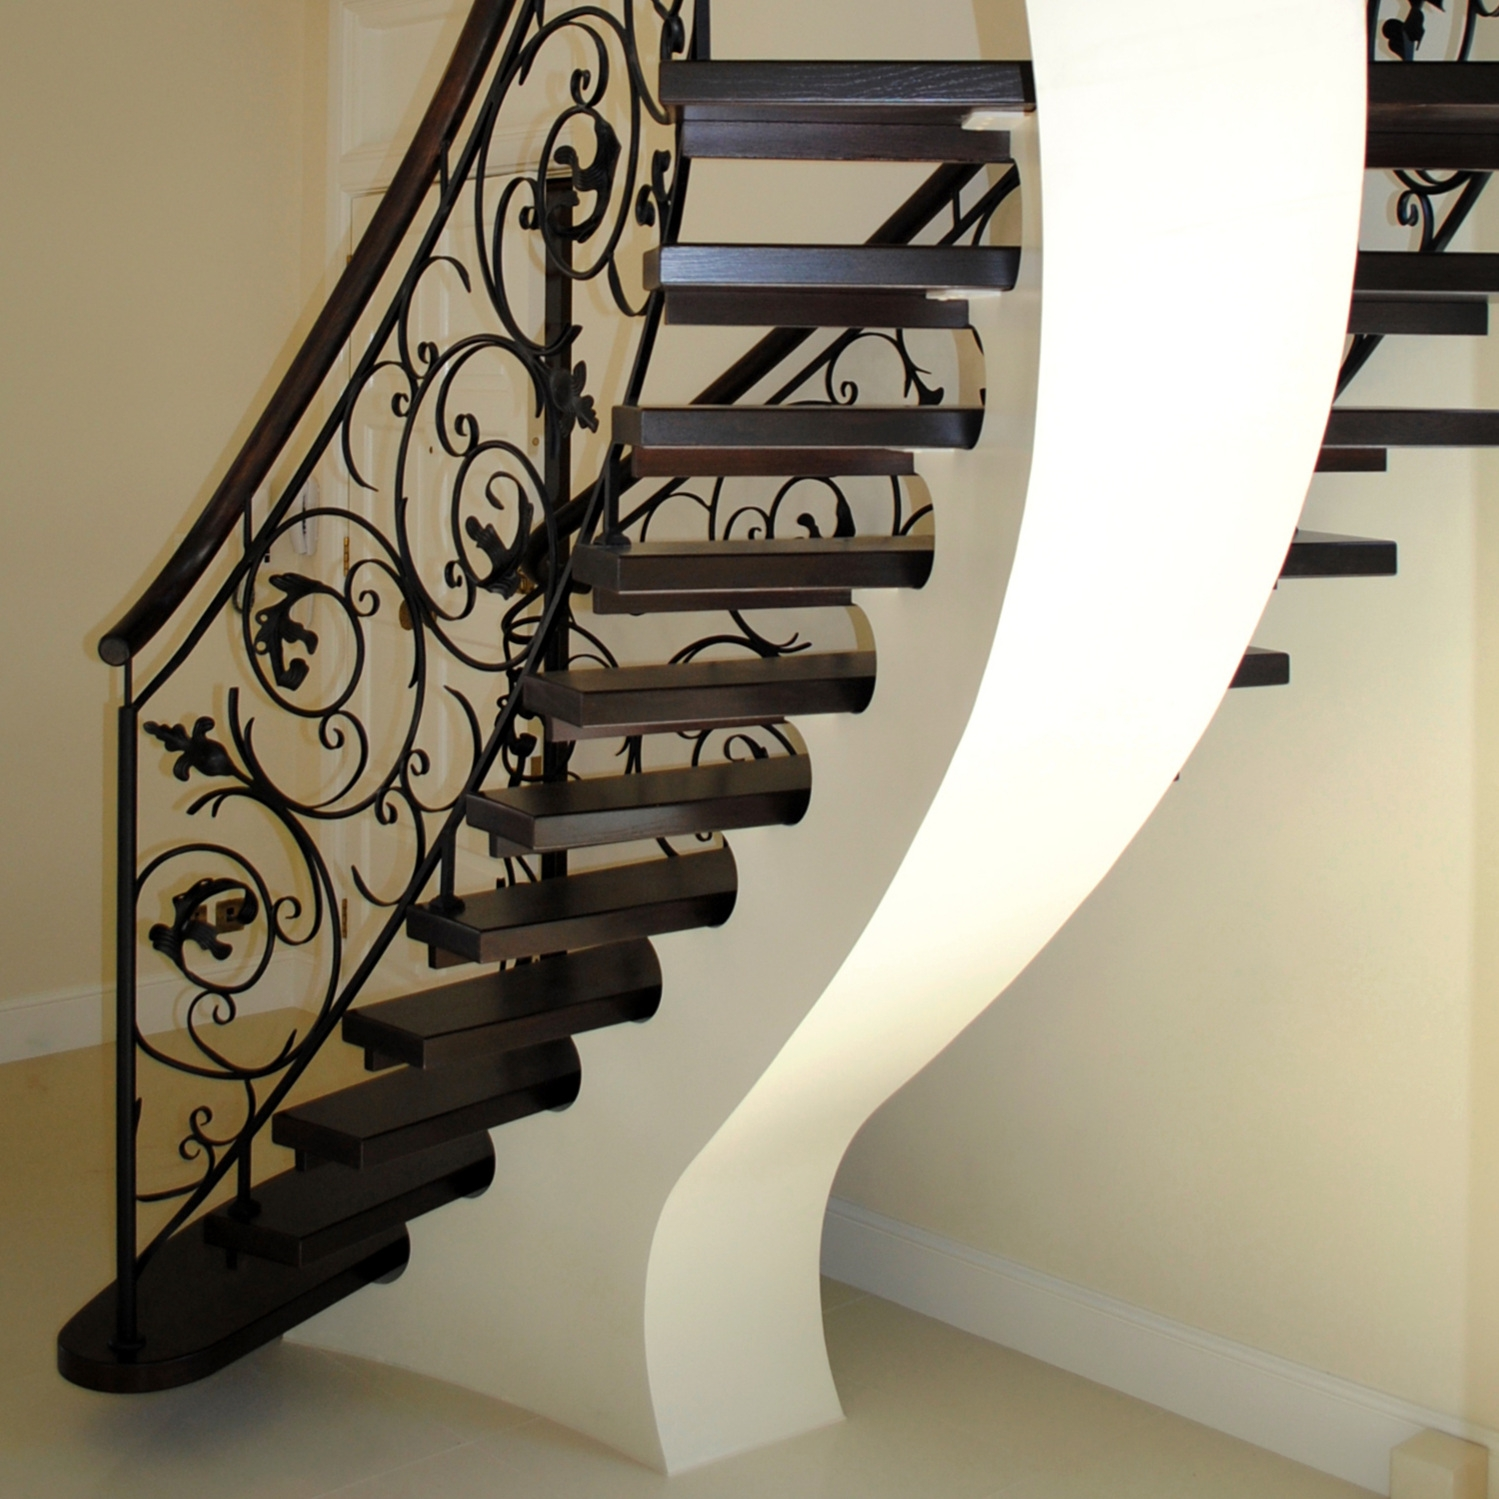 Modern Design Staircases | Staircase Designs With Steel And Glass | Affordable | Outdoor | Railing | Spiral | Staircase Design Modern House